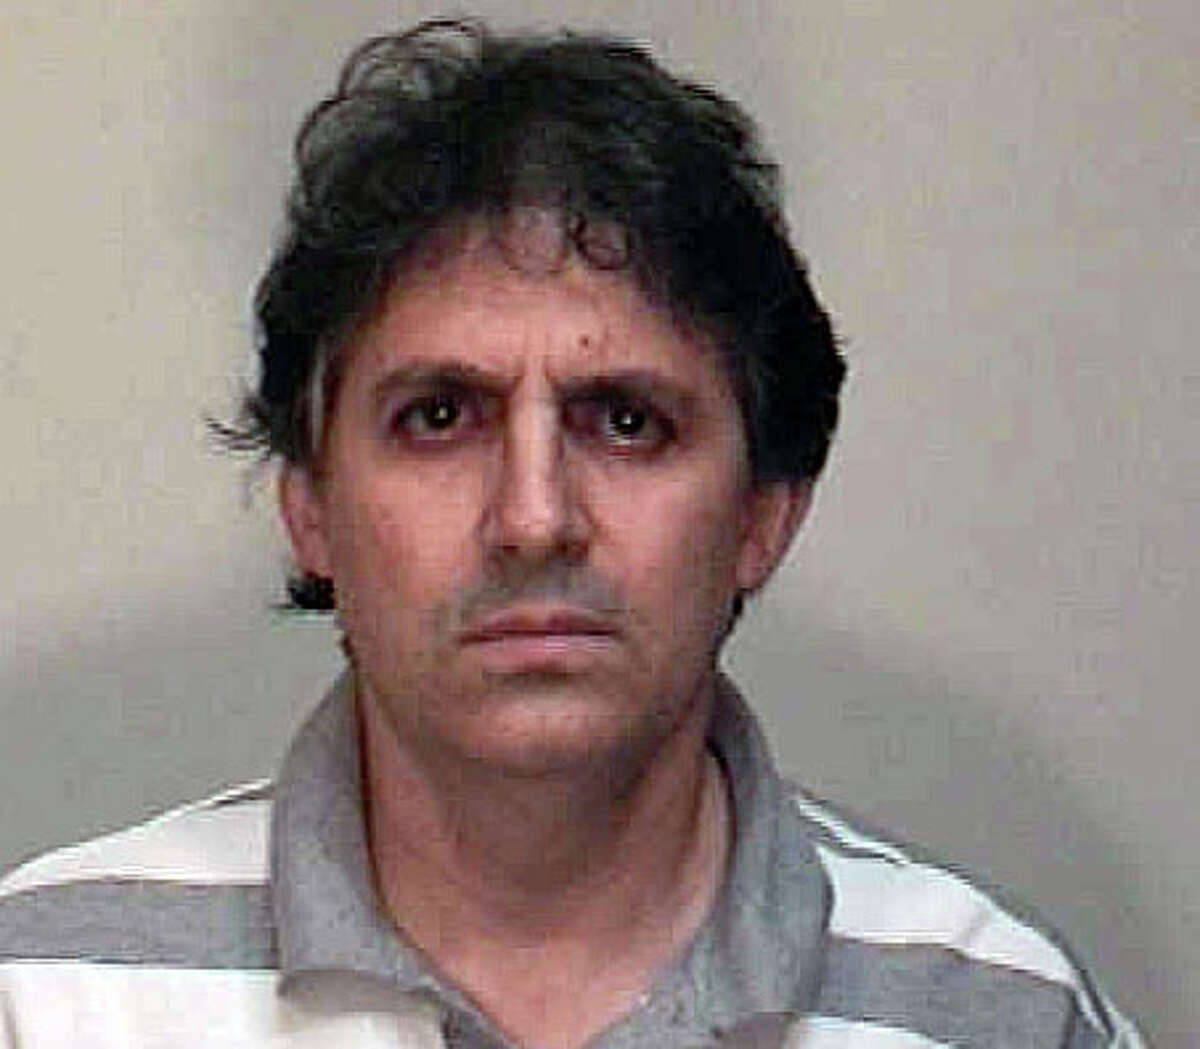 Eduardo Rivera, 46, was charged with sexual assault of a miinor.